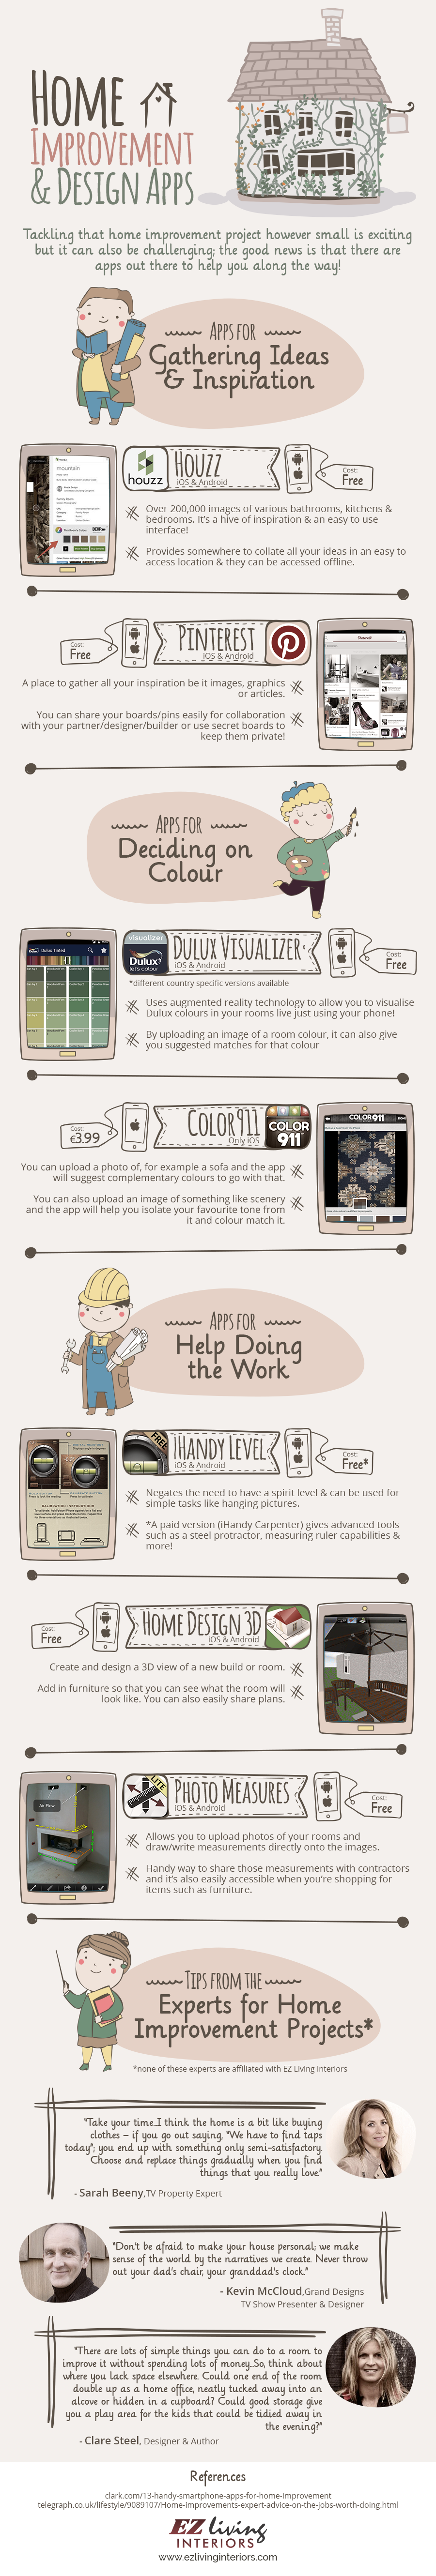 Apps for Home Improvement Infographic